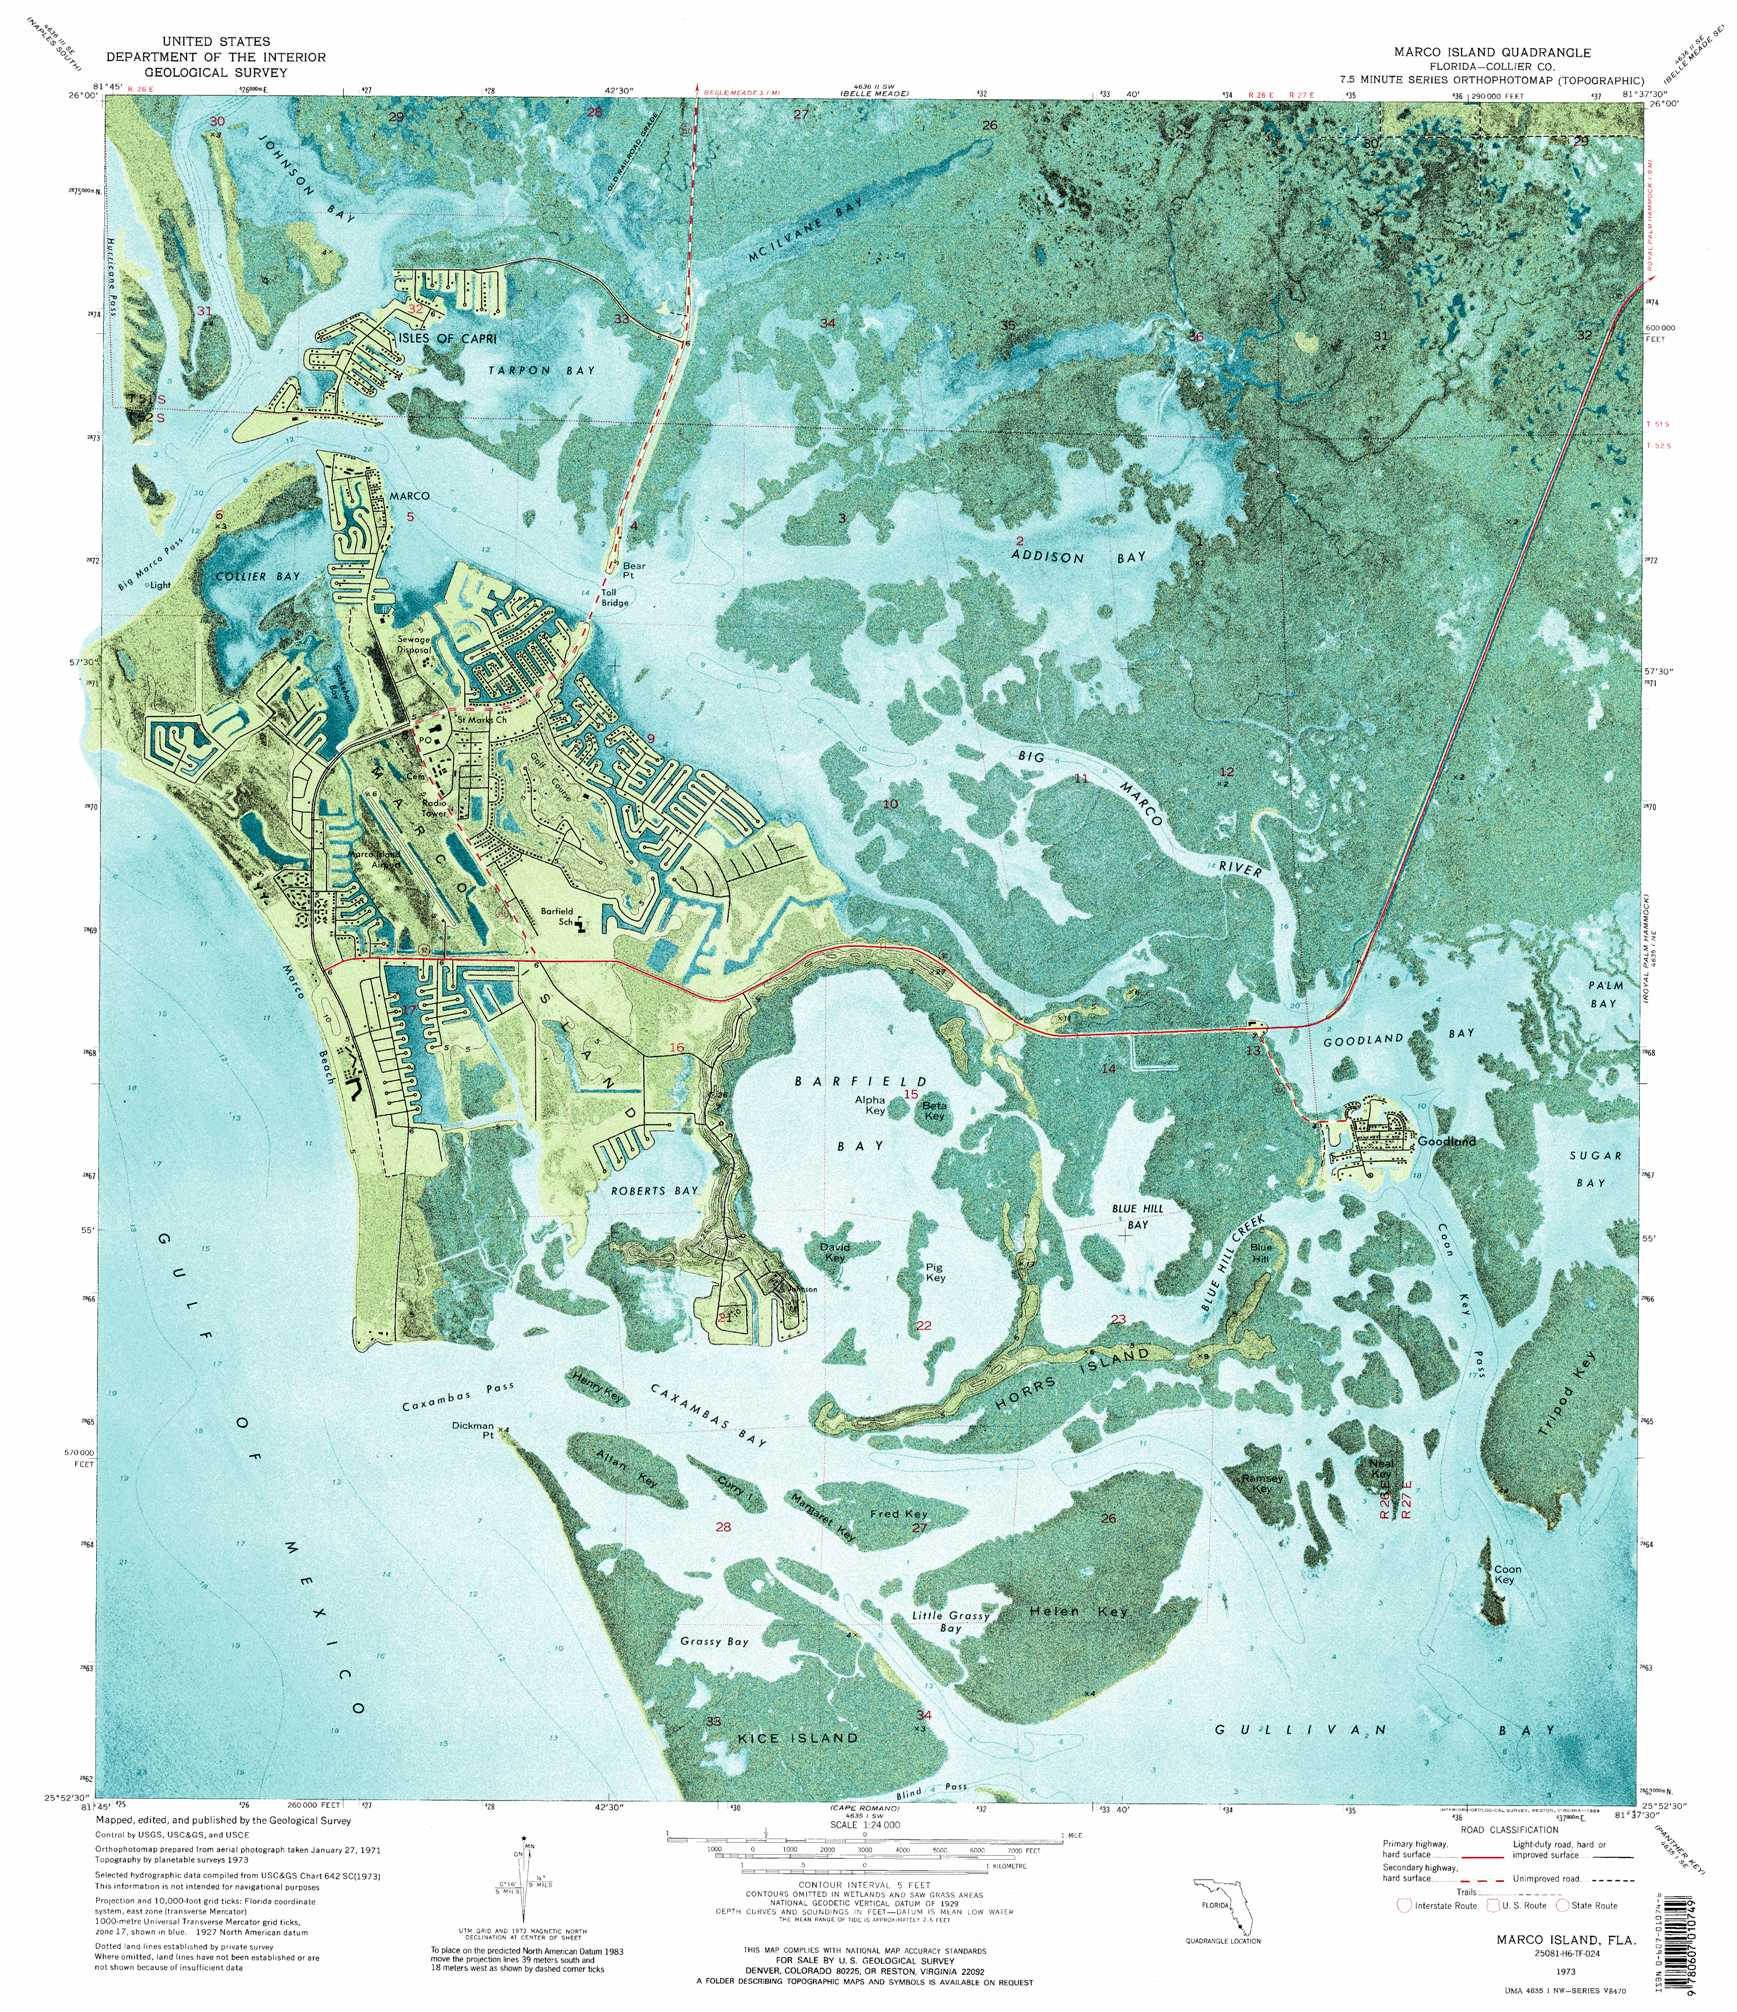 Marco Island Topographic Map FL USGS Topo Quad H - Florida elevation map